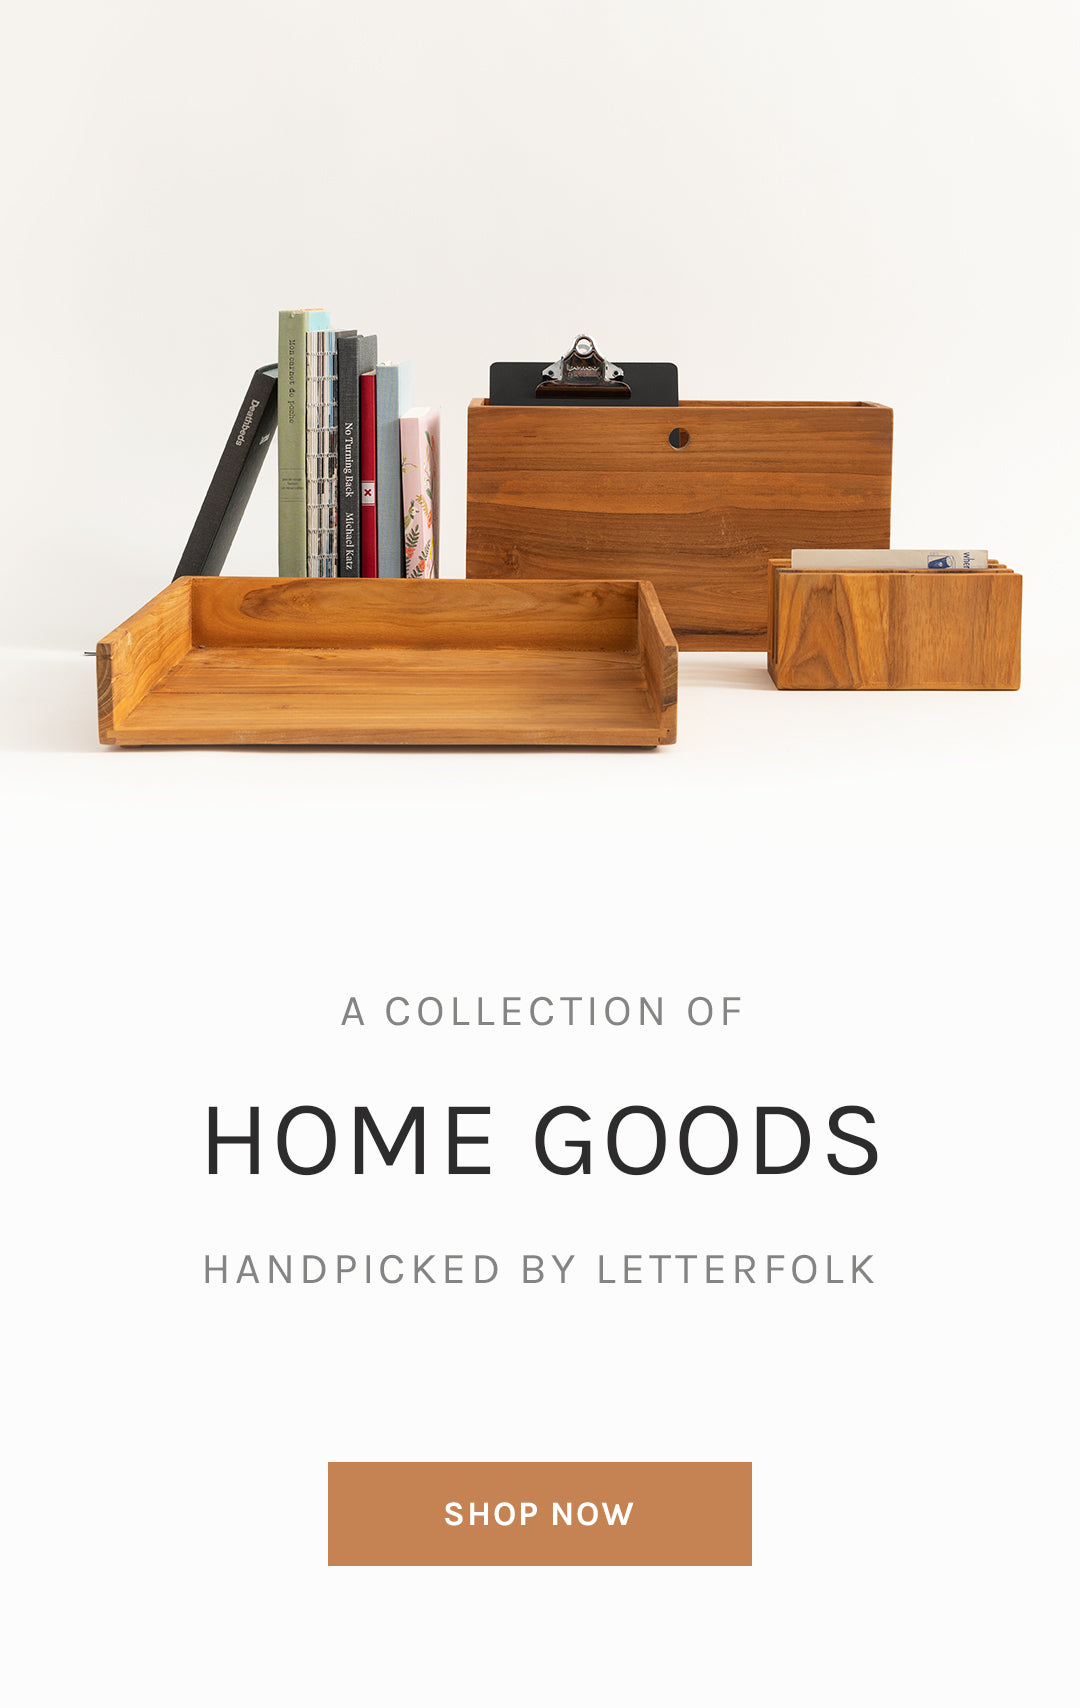 A Collection of Home Goods Handpicked by Letterfolk